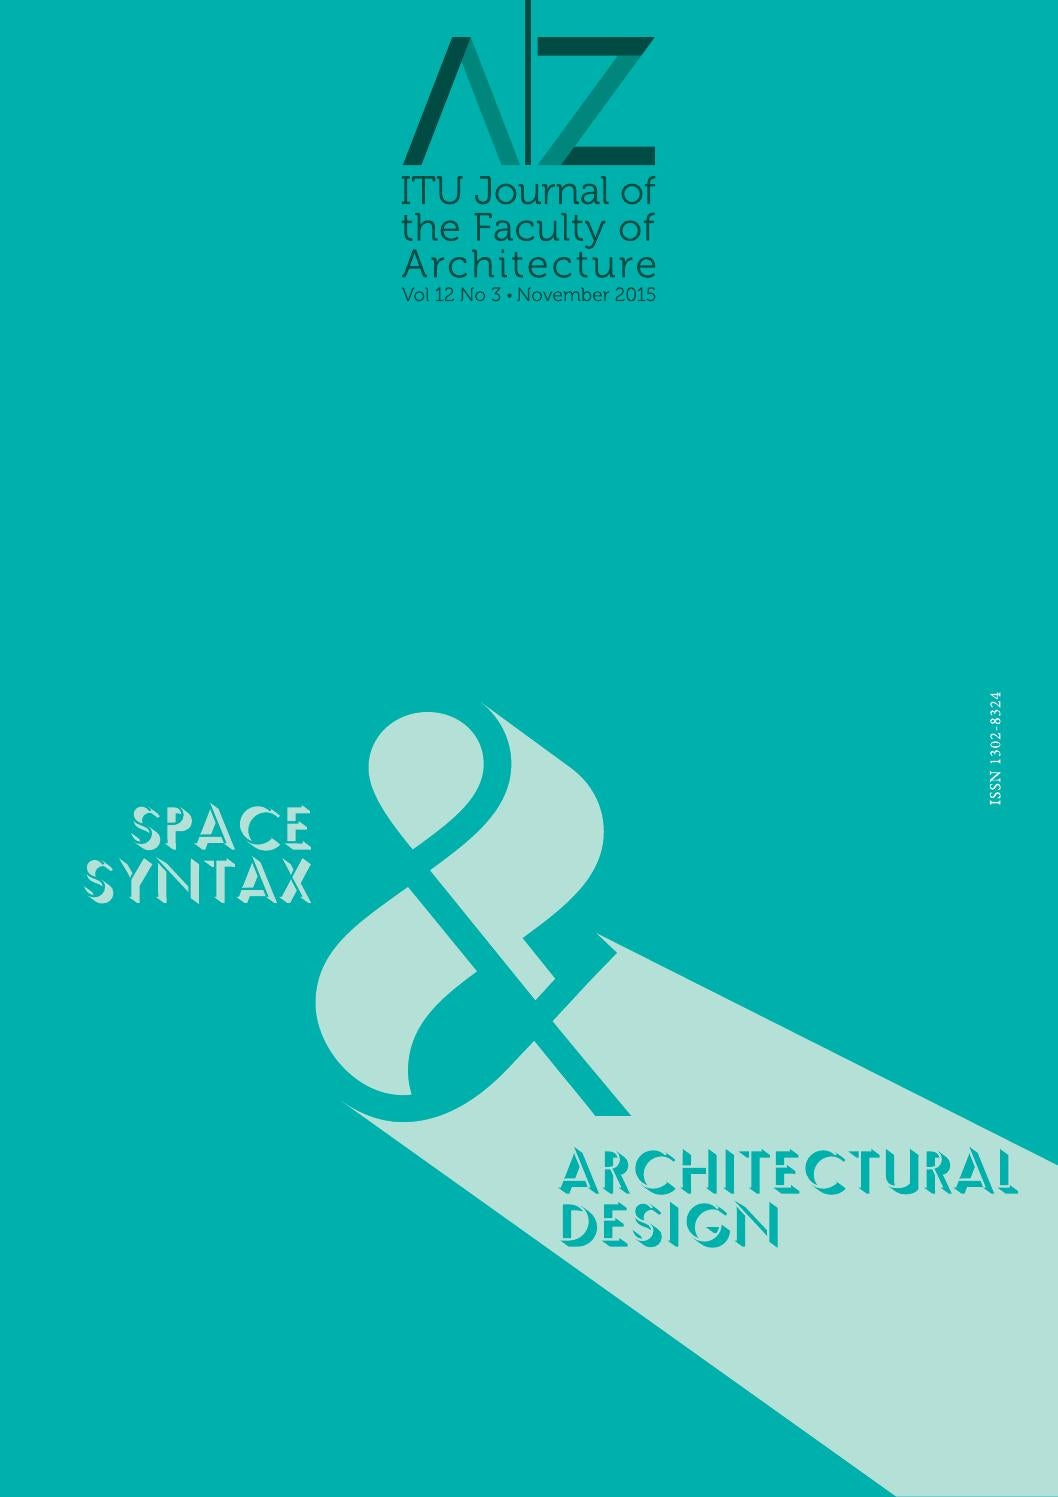 Az itu journal of faculty of architecture 2015 3 by lookus az itu journal of faculty of architecture 2015 3 by lookus scientific issuu fandeluxe Image collections